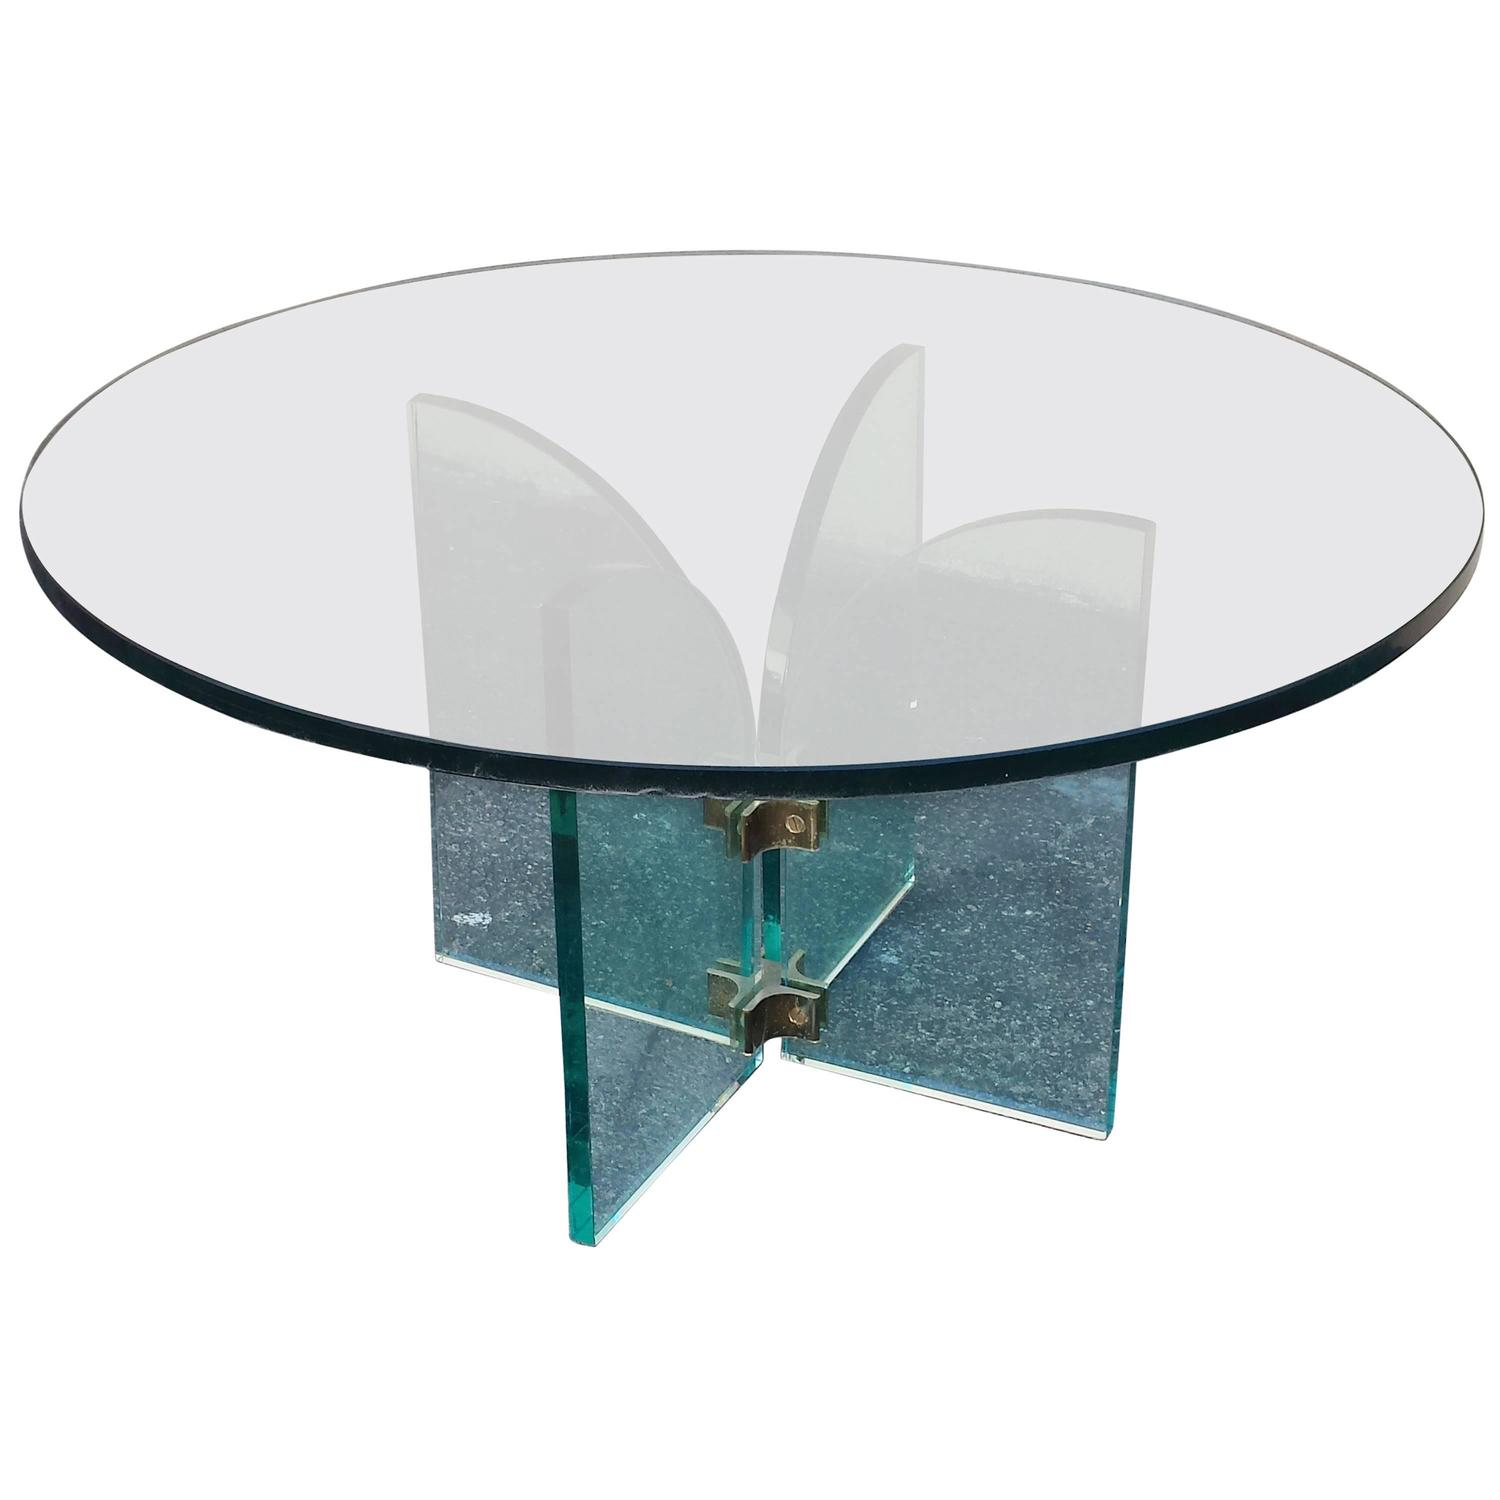 Coffee table mid century modern style round glass coffee or cocktail table for sale at 1stdibs Round coffee table modern